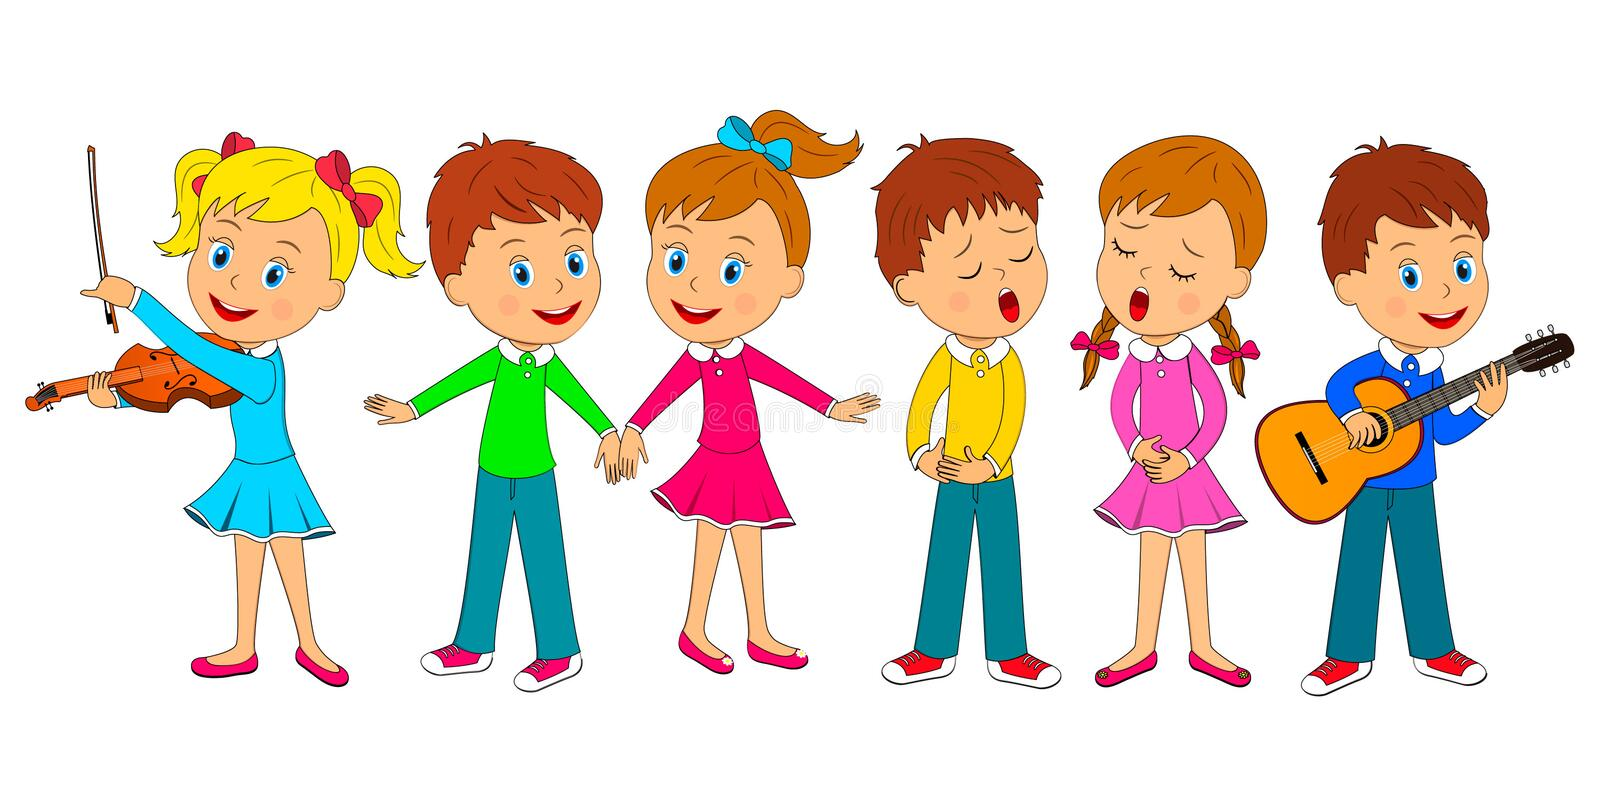 Kids dance, sing and play music vector illustration